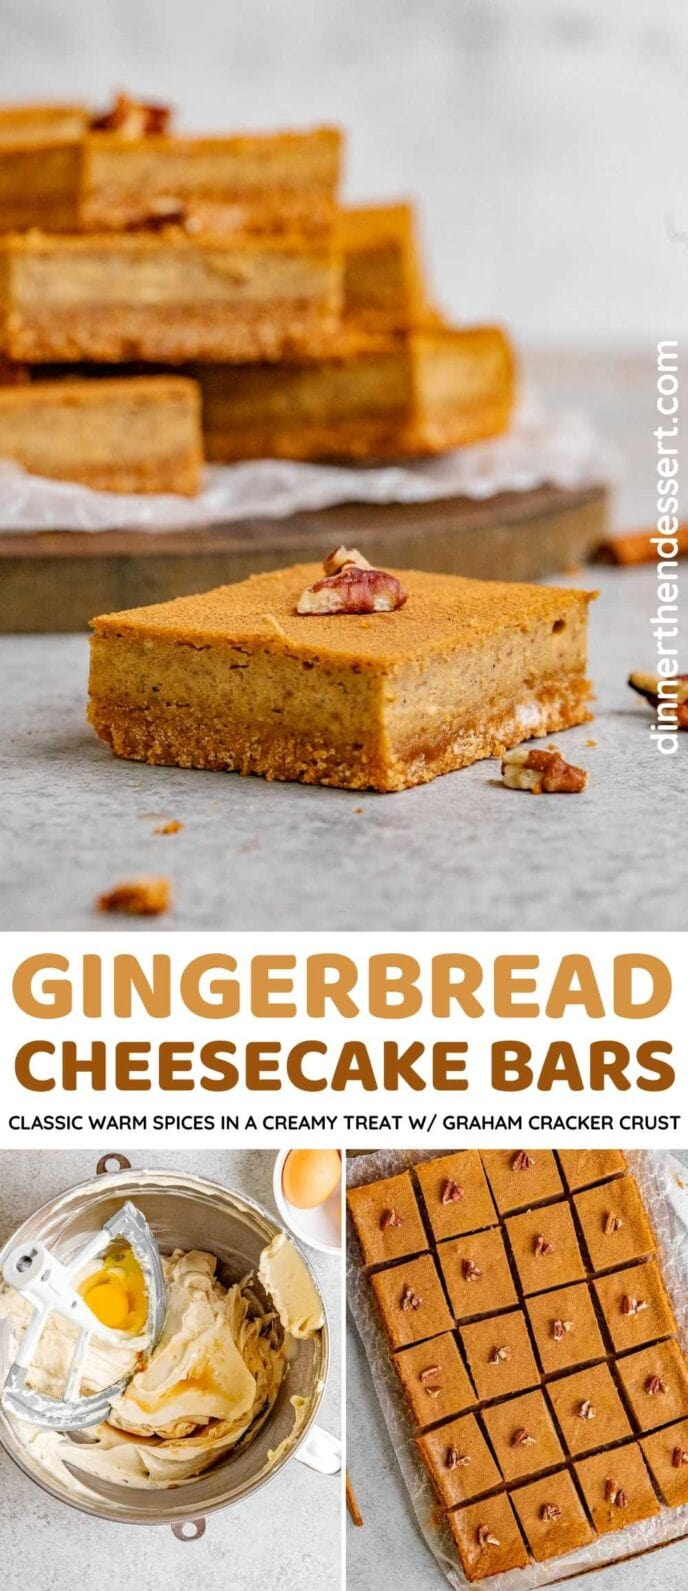 Gingerbread Cheesecake Bars Collage